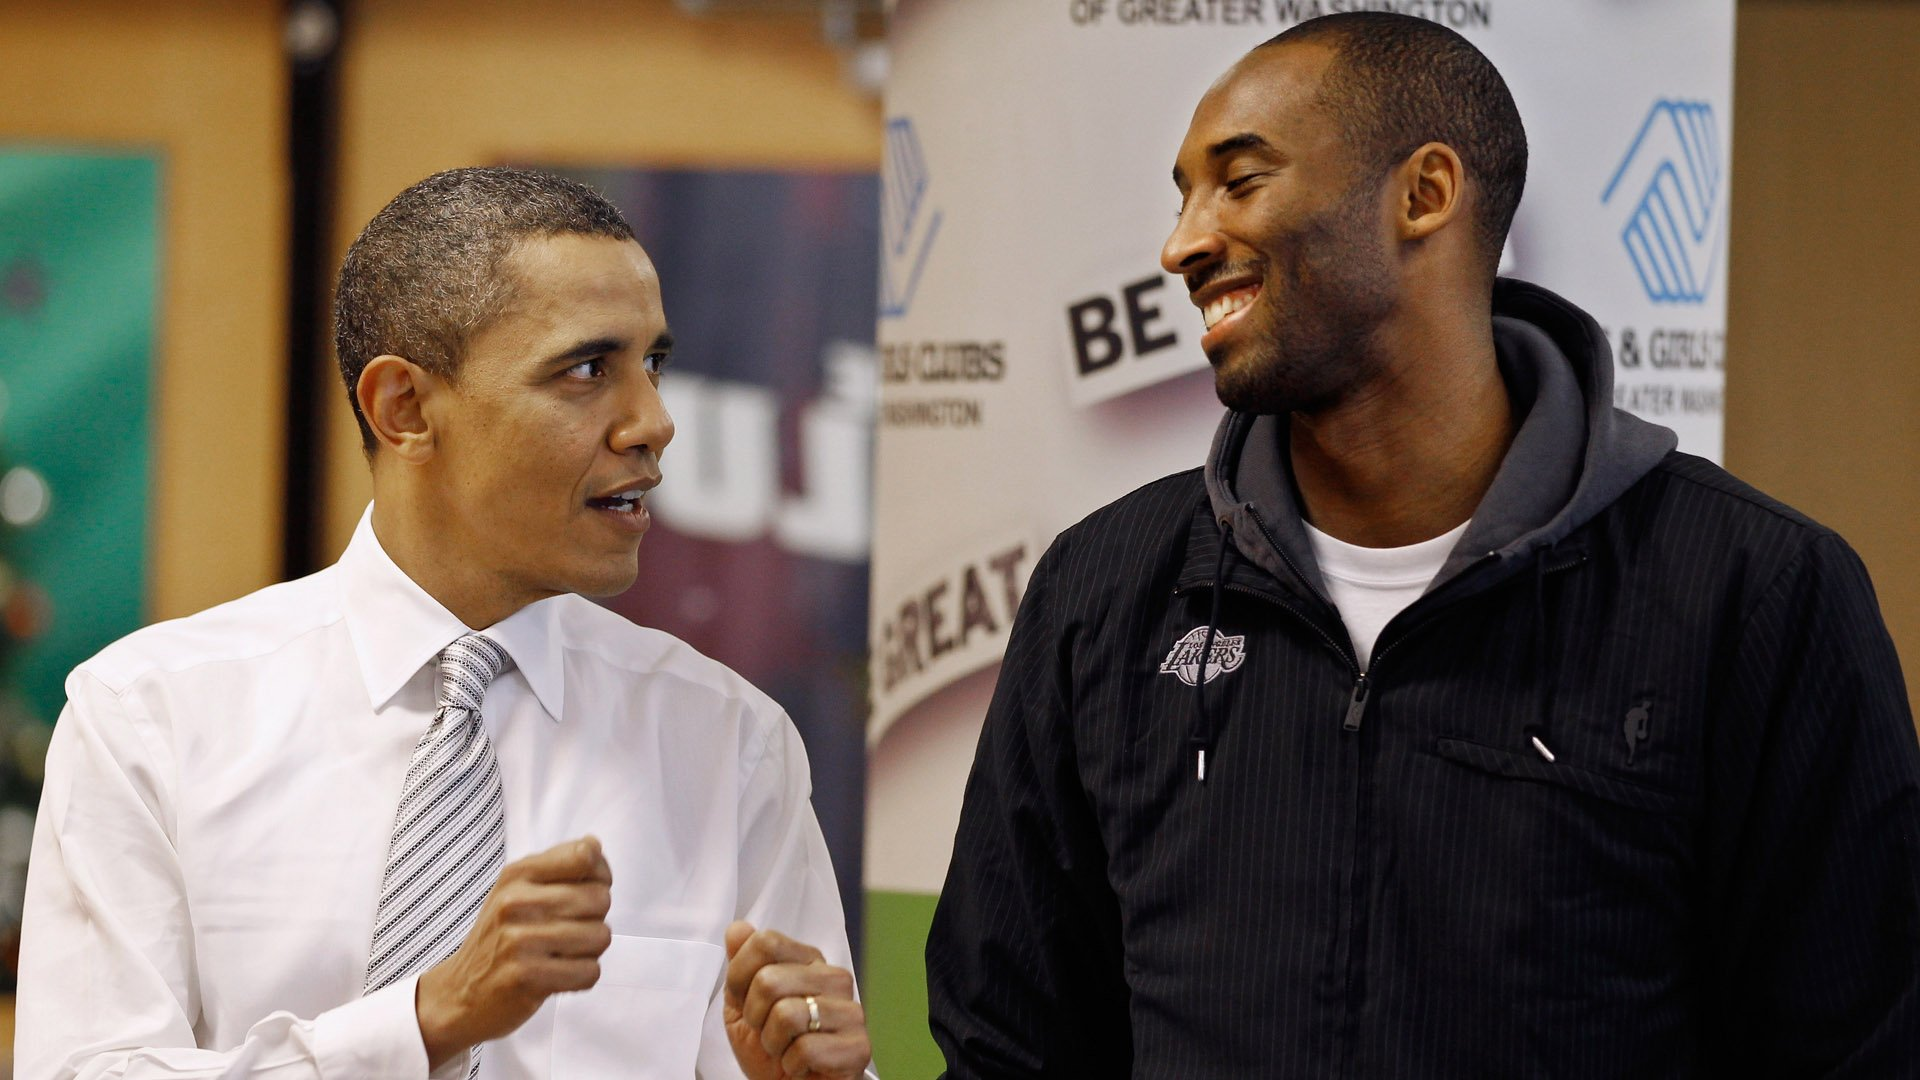 Barack Obama talks with Kobe Bryant while filling care packages during a NBA Cares service event at the Boys and Girls Club on Dec. 13, 2010, in Washington, DC. (Credit: Chip Somodevilla/Getty Images)